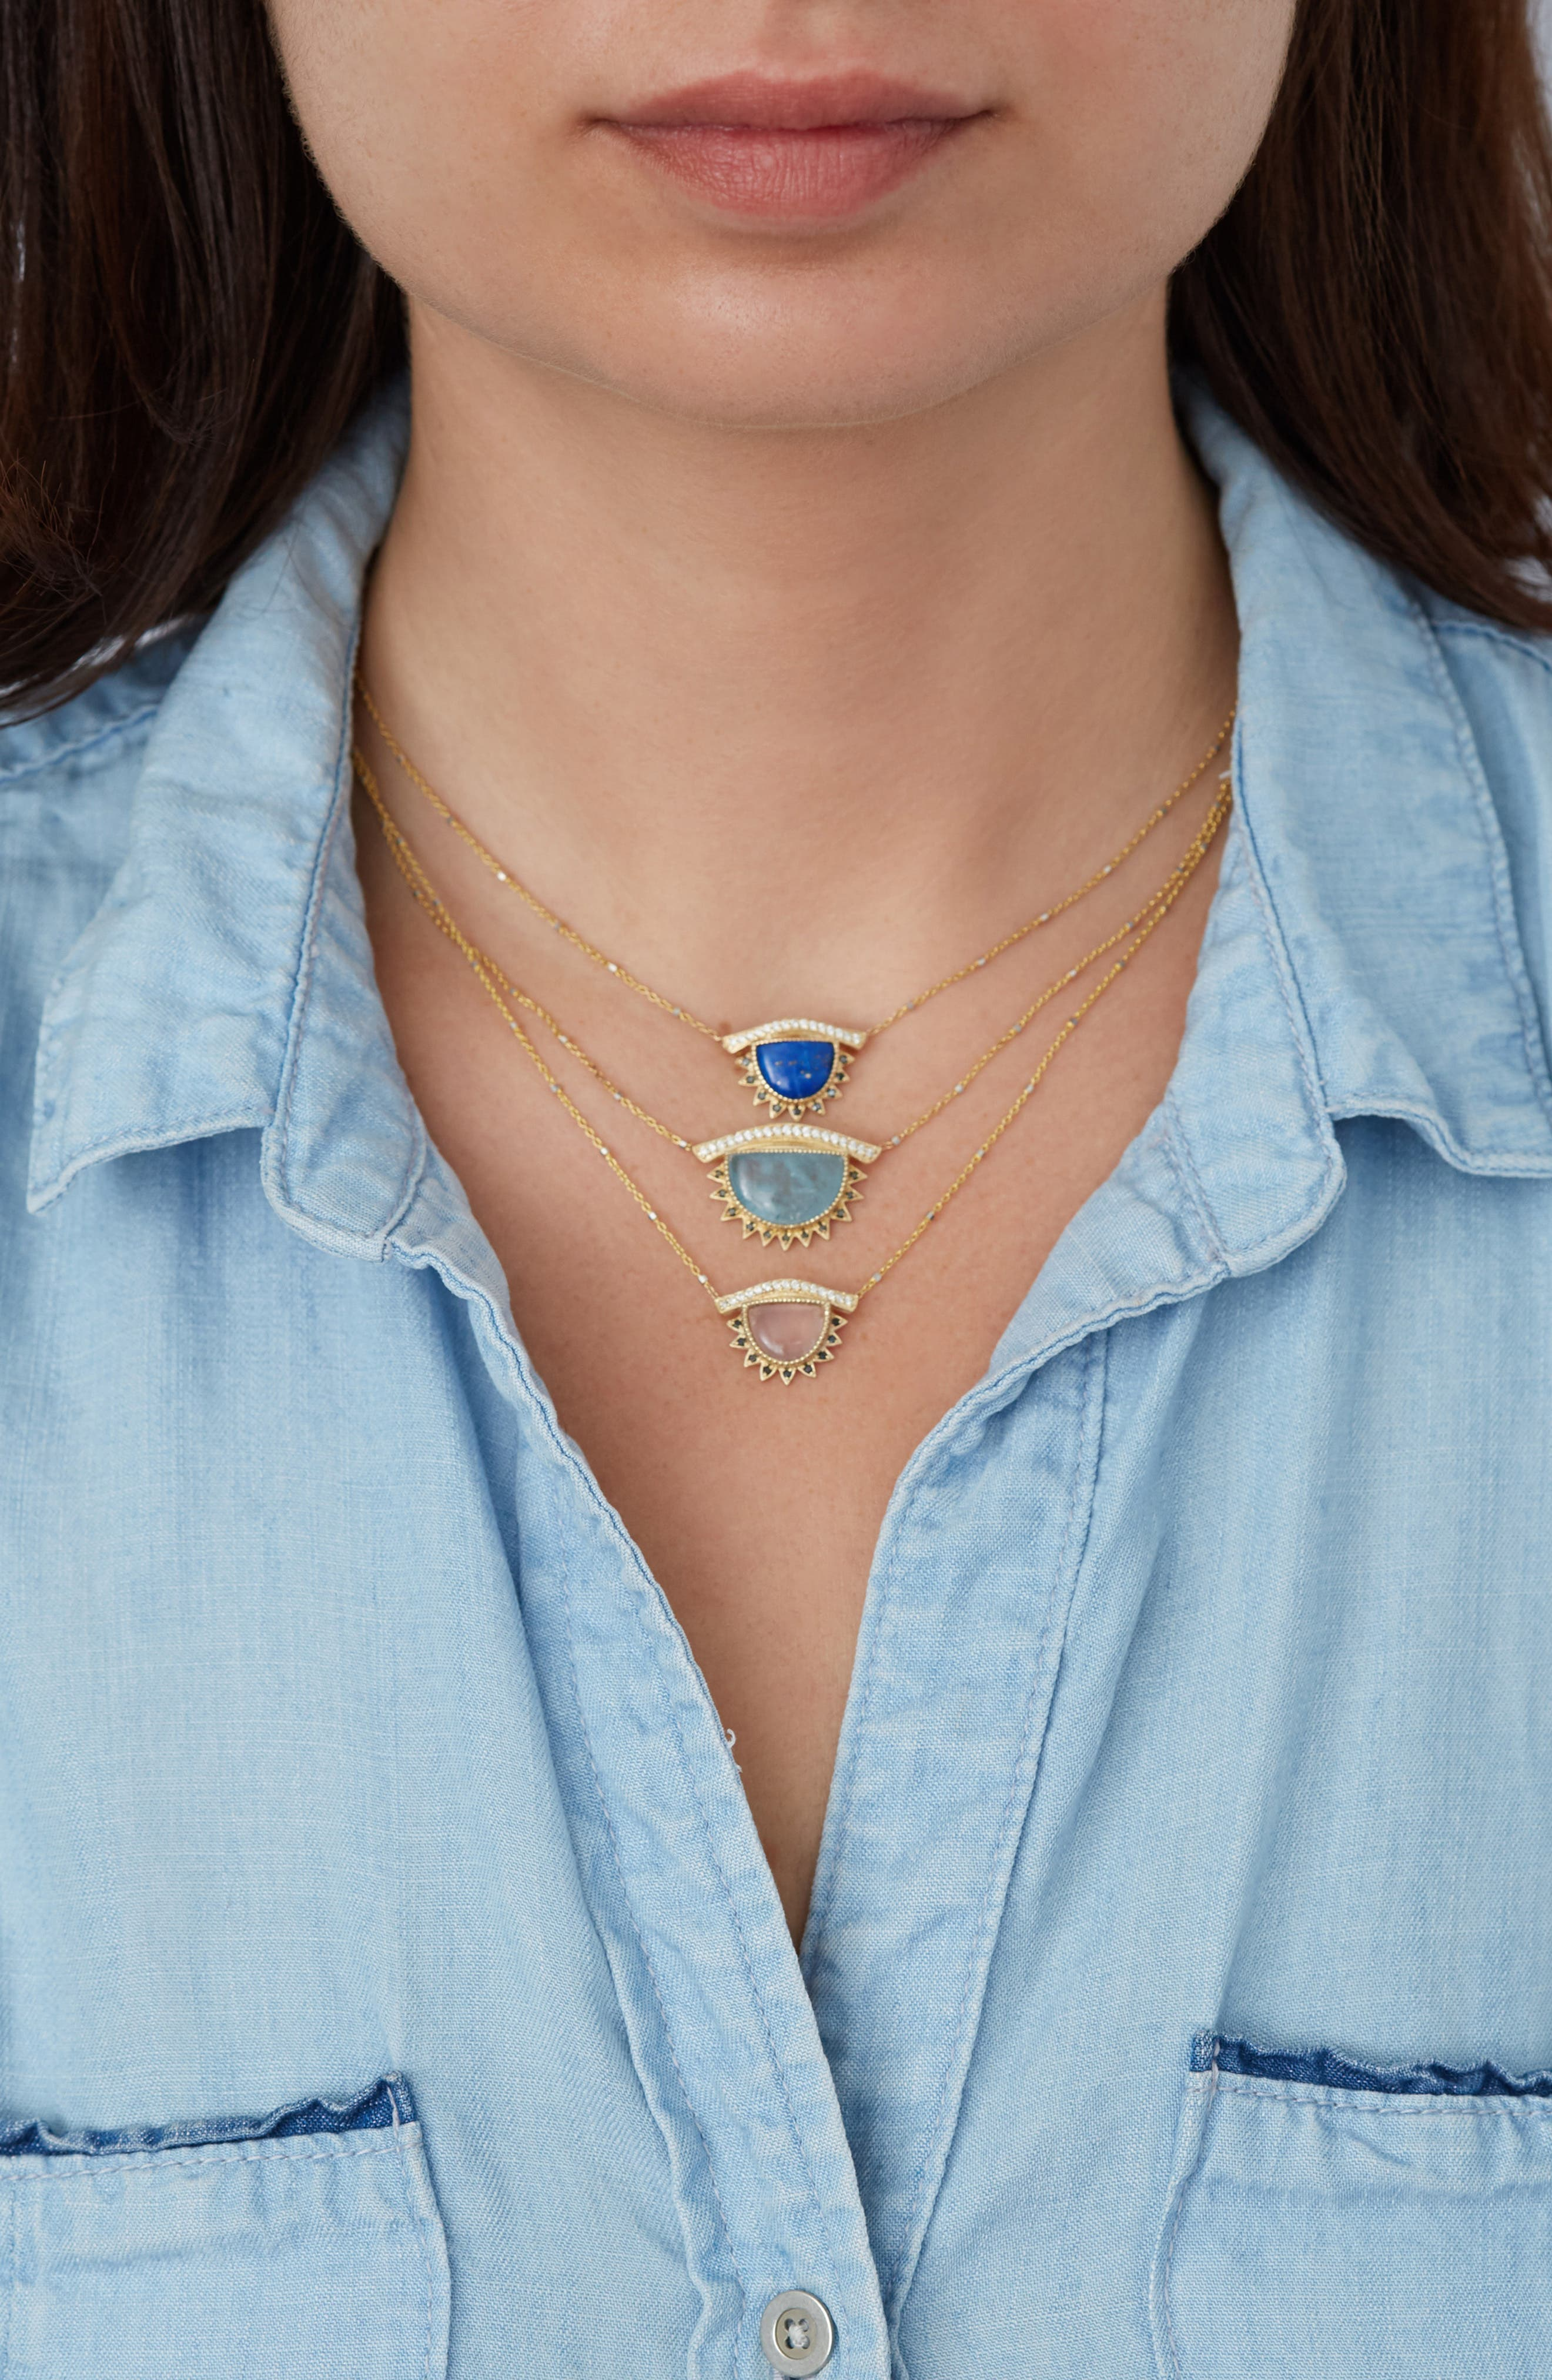 Inspire & Calm Small Third Eye Necklace,                             Alternate thumbnail 2, color,                             YELLOW GOLD